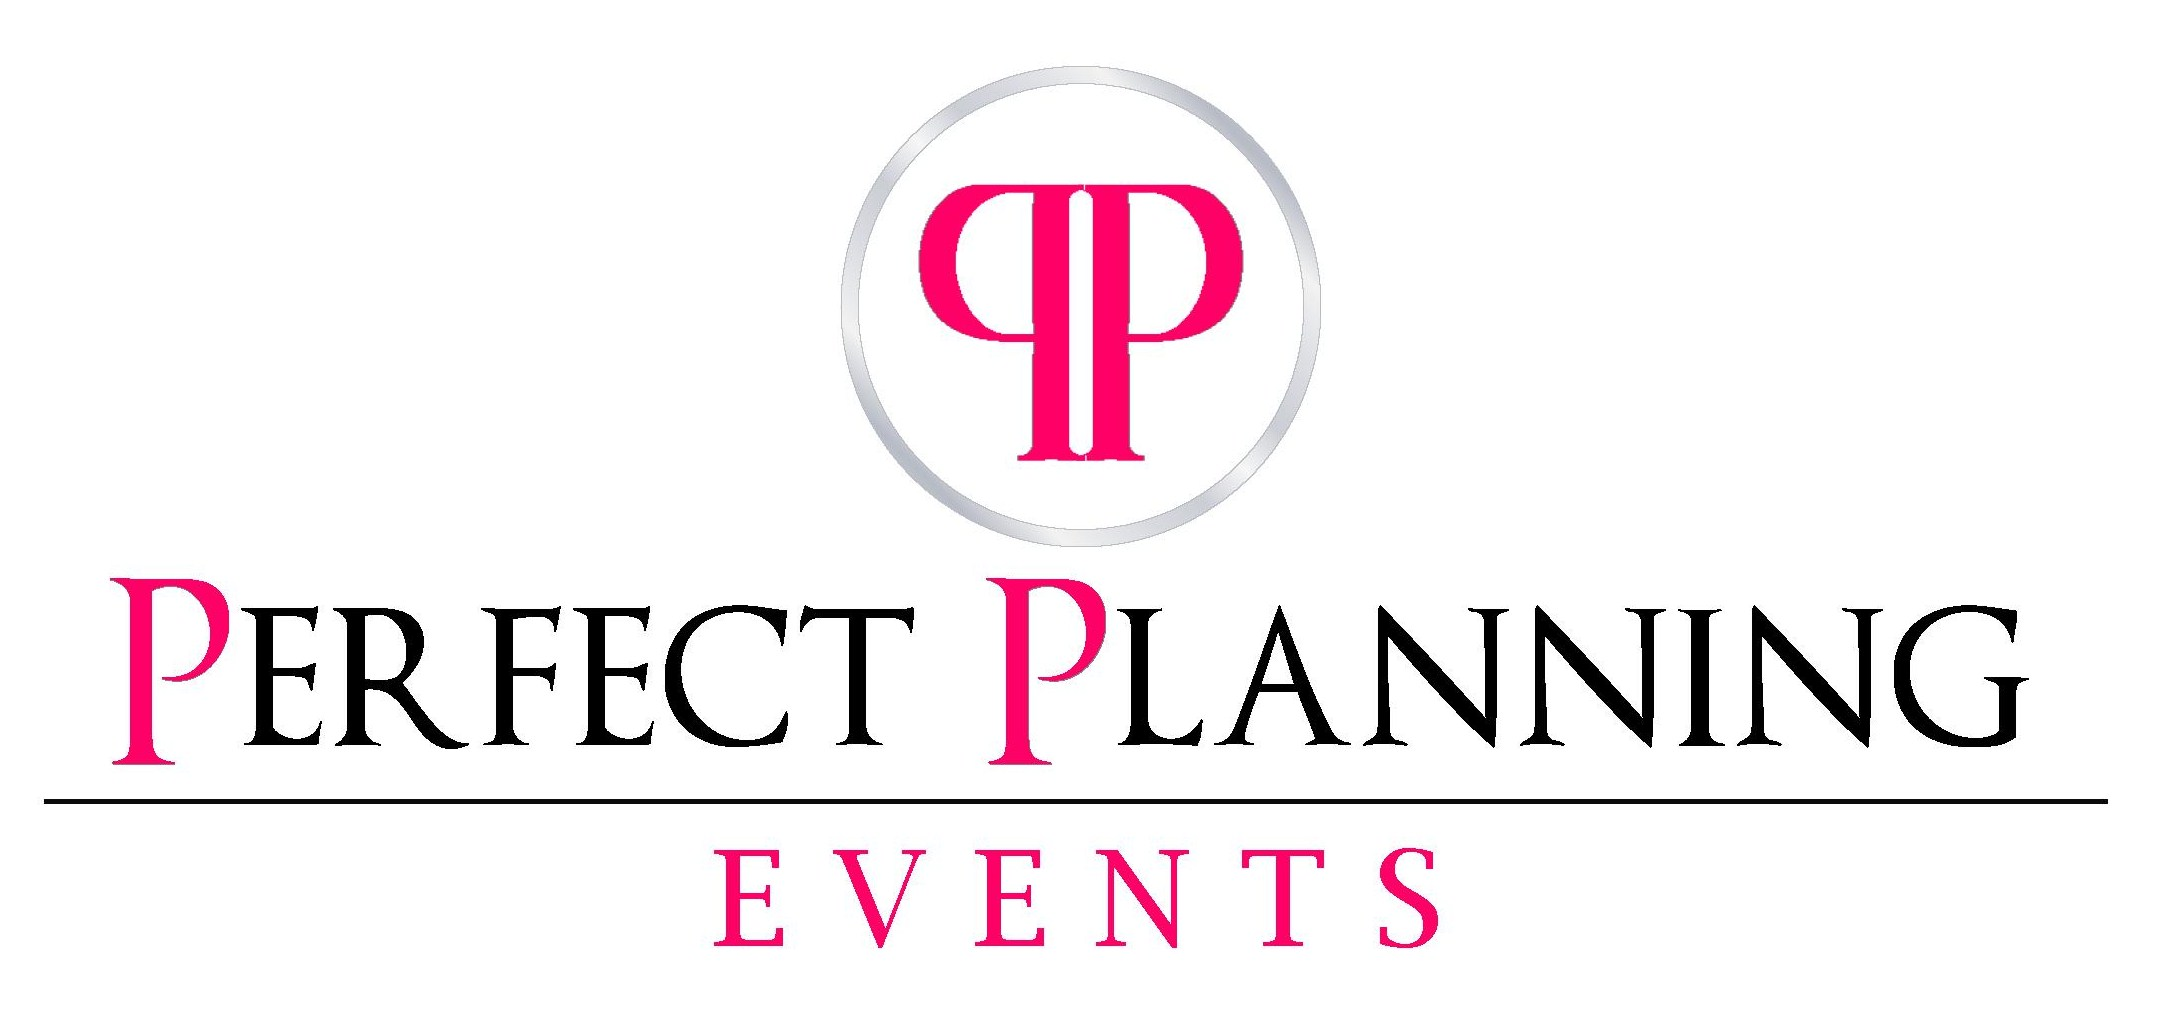 Perfect Planning at the Wedding Blueprint: A wedding open house with DC's Top Wedding Professionals. Feb 22 in Alexandria, VA.